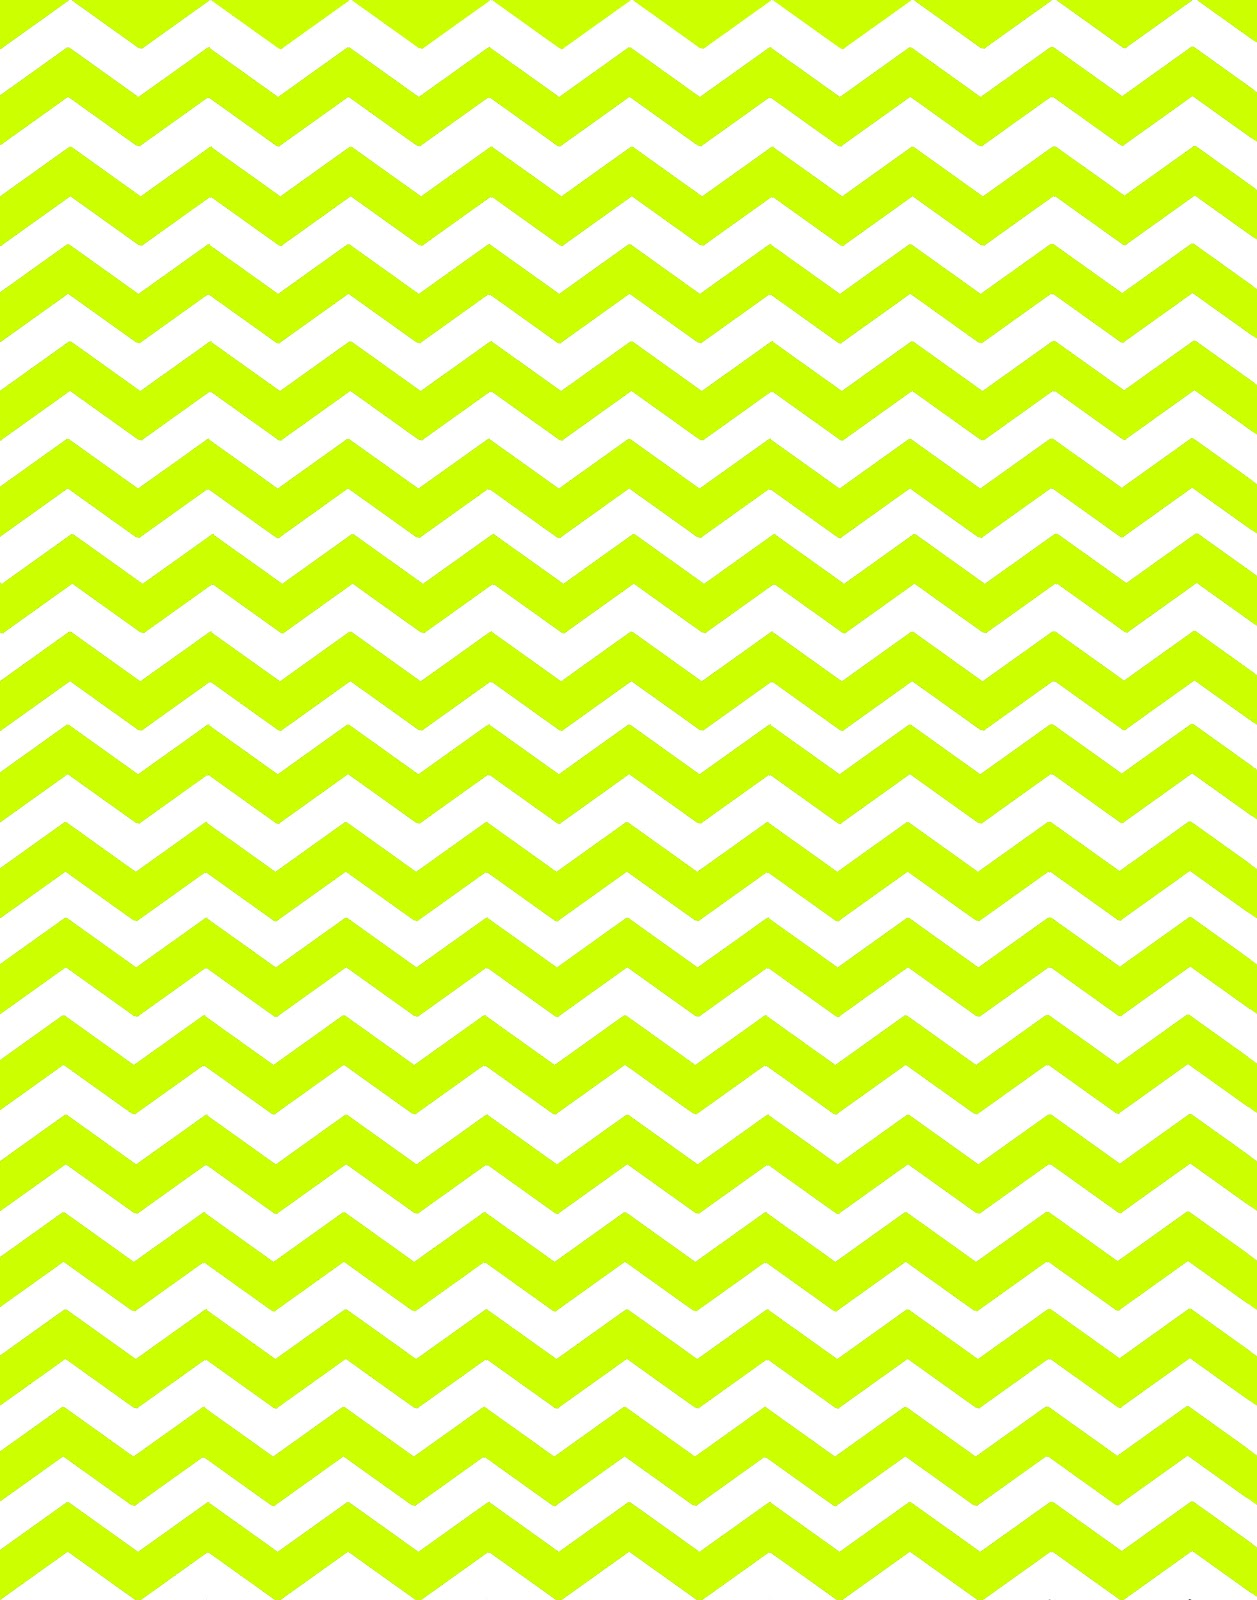 Free Chevron Patterns - ClipArt Best